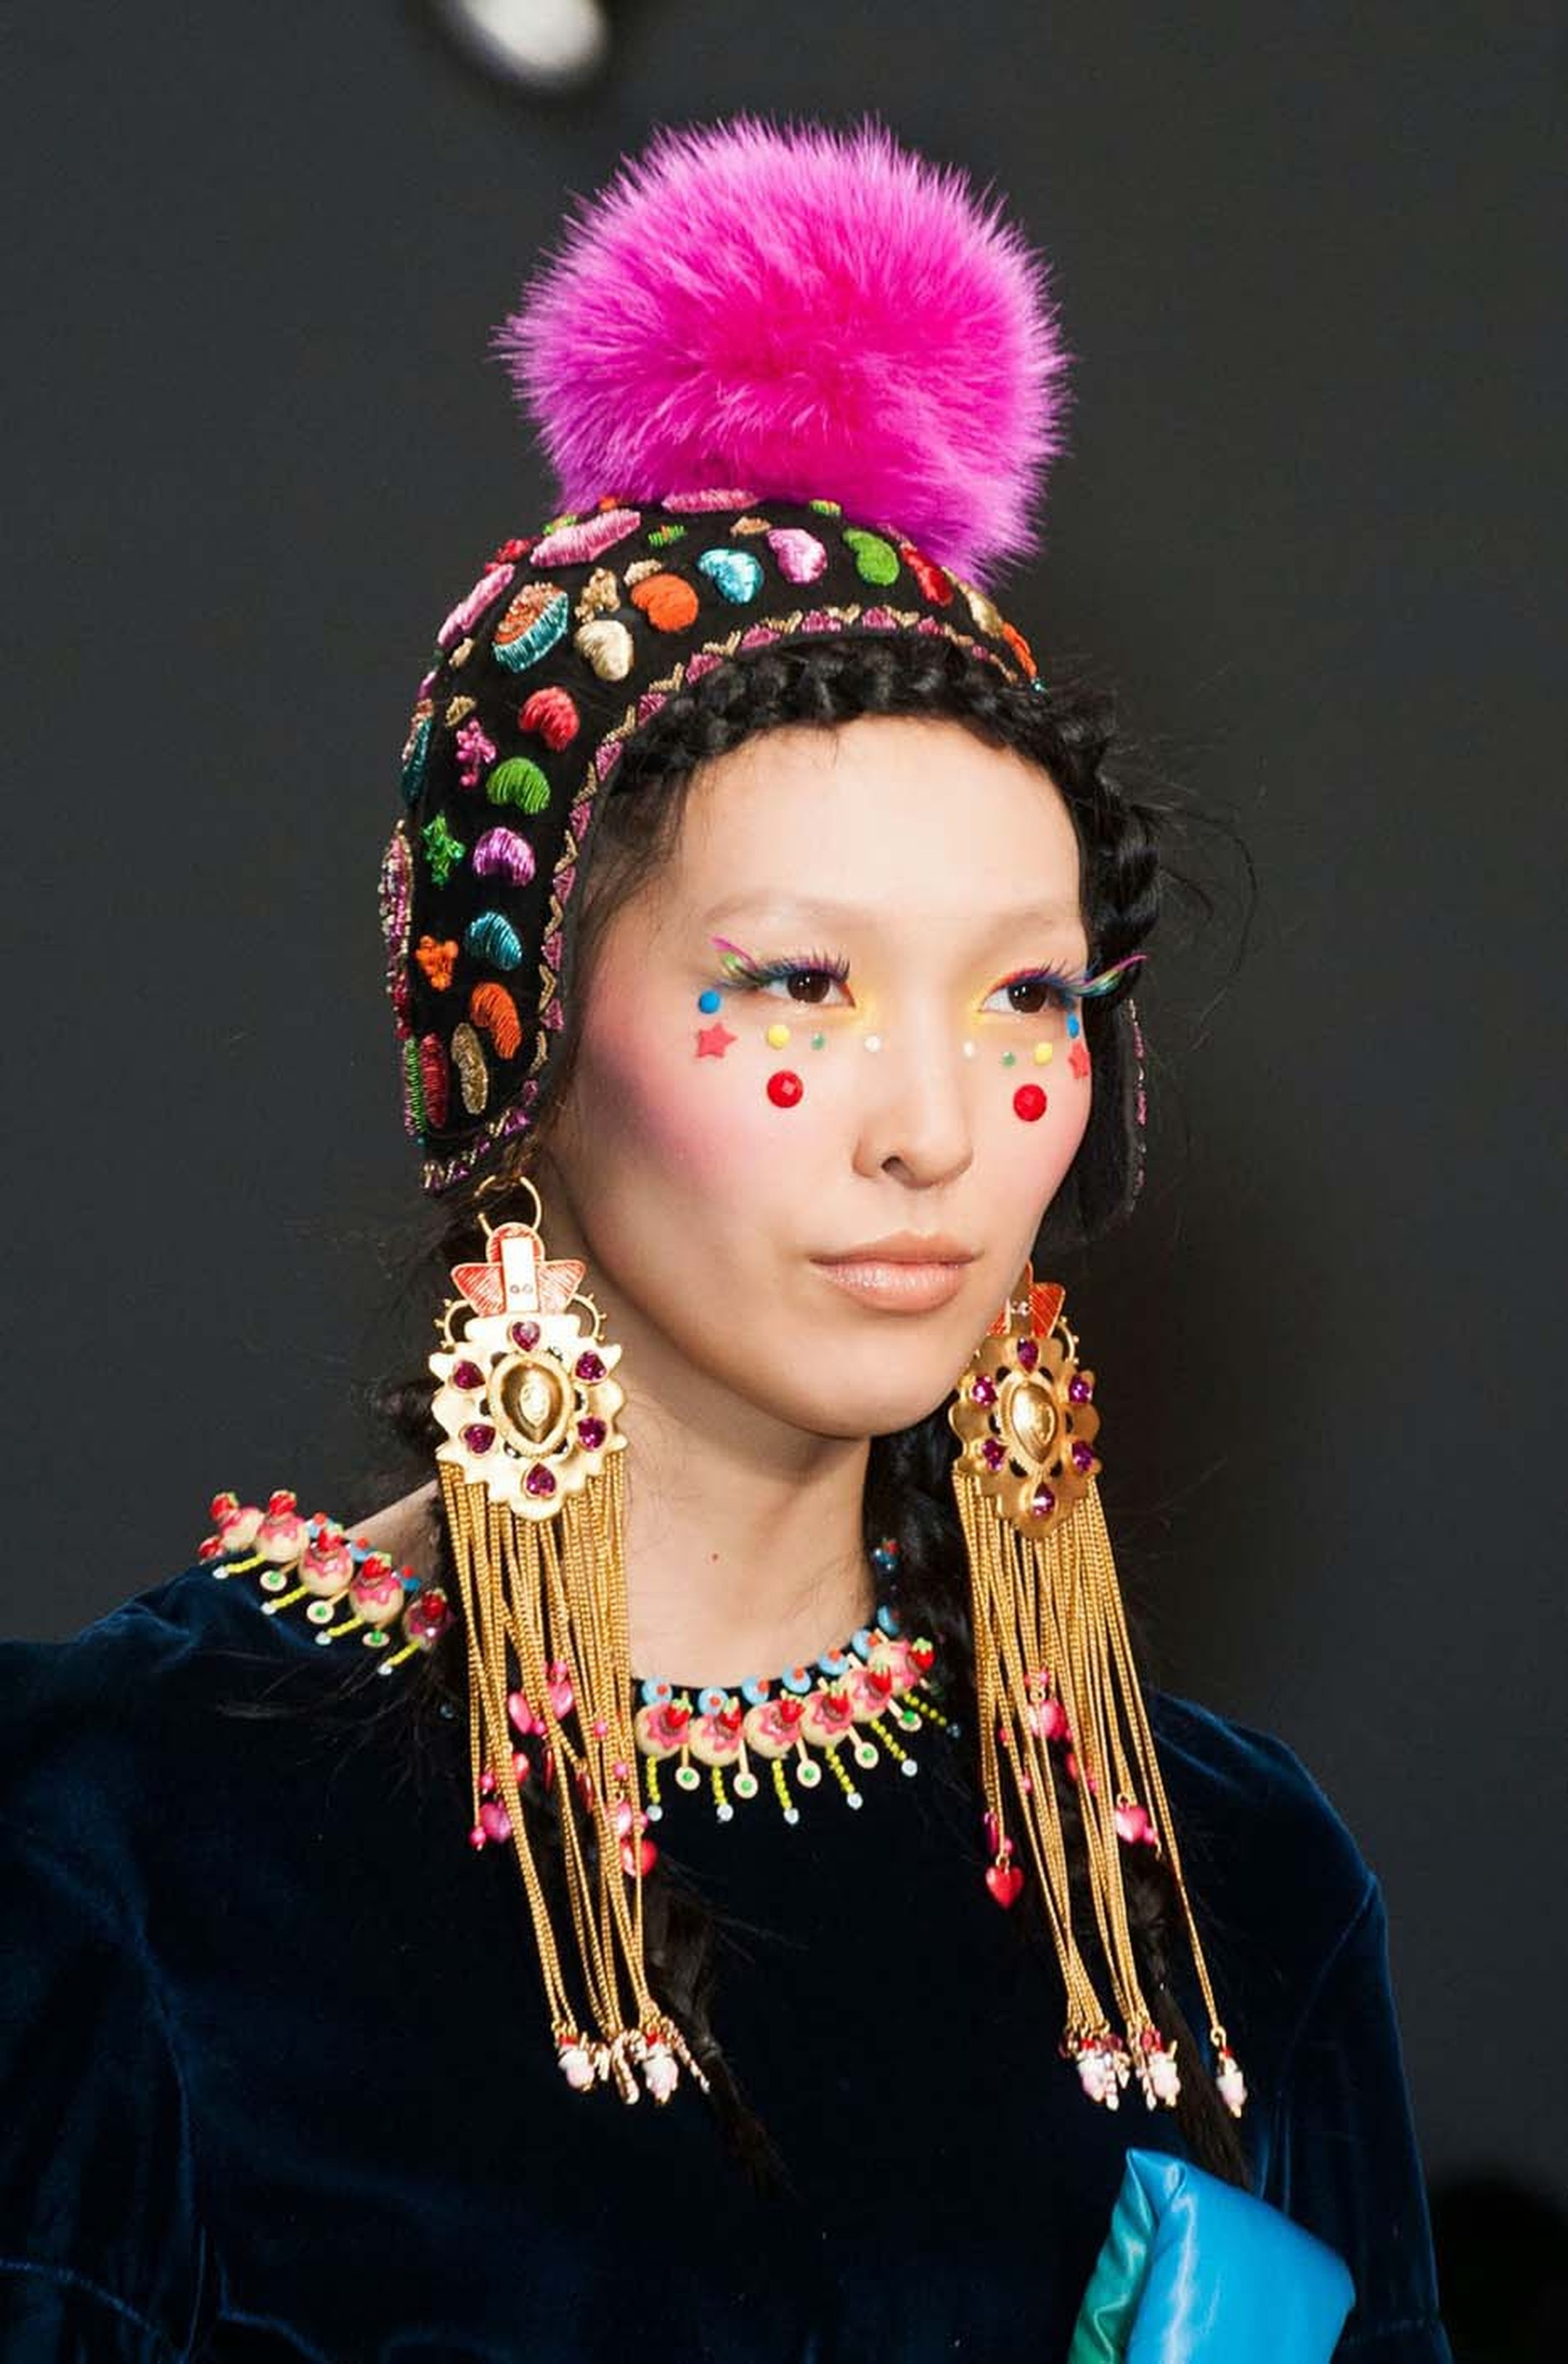 A model showcasing earrings from the Amrapali and Manish Arora AW 2014-15 collection during Paris Fashion Week.